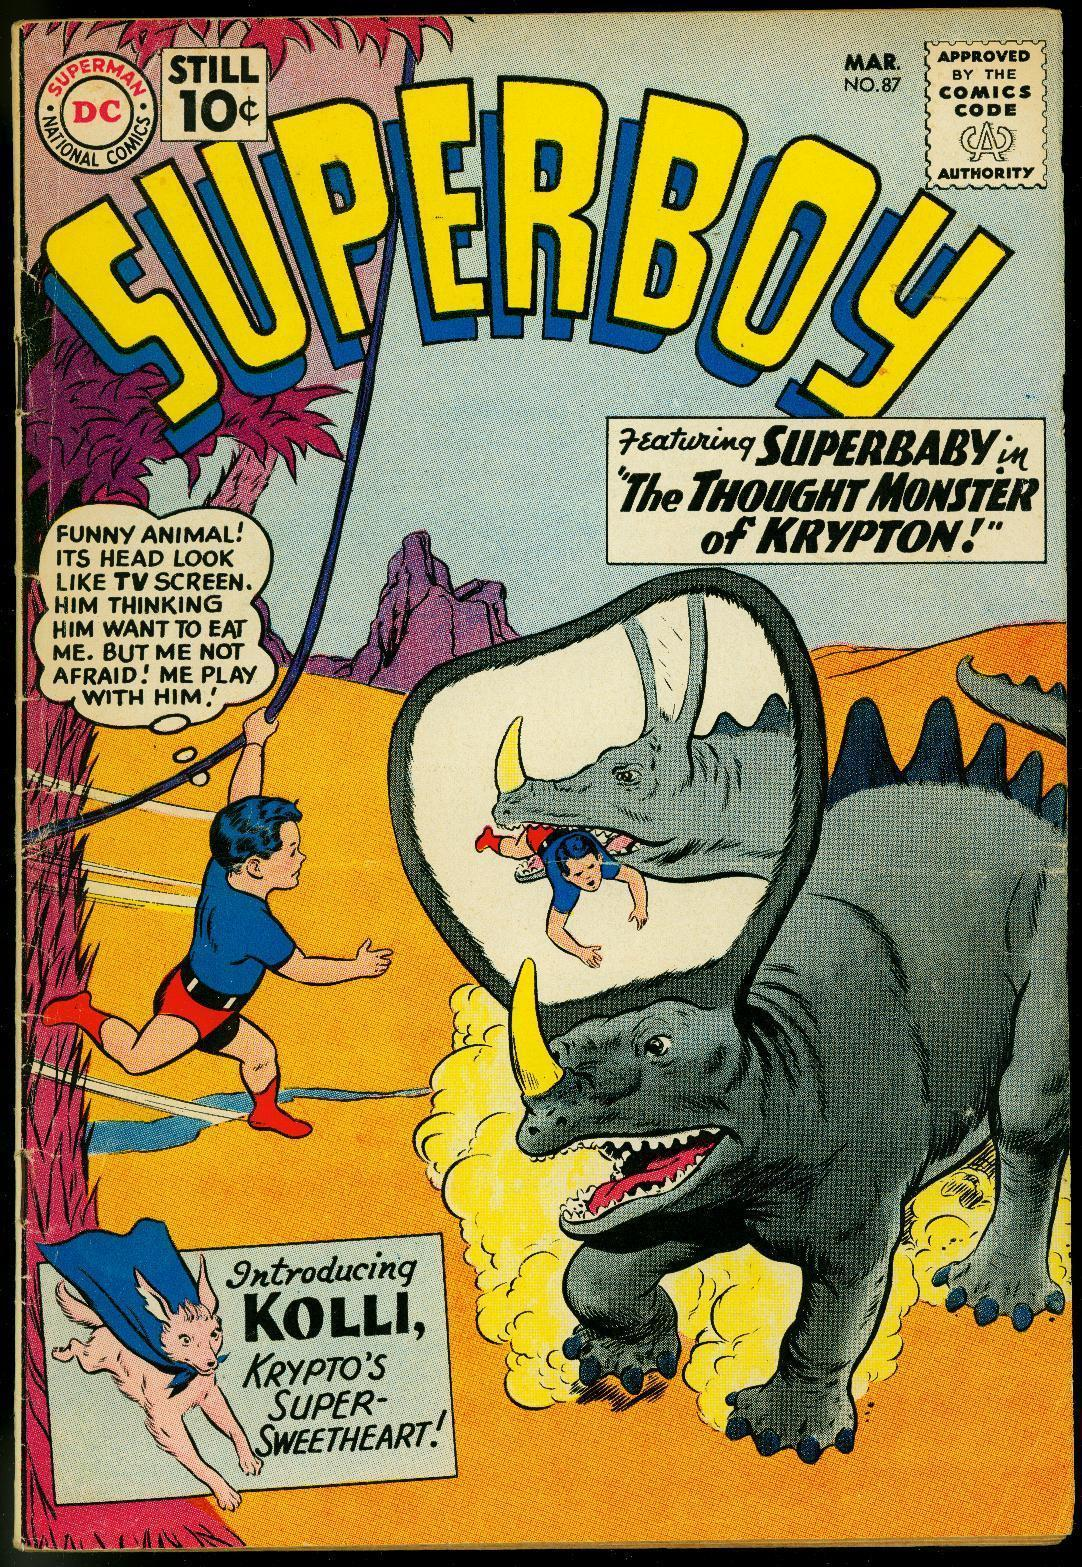 SUPERBOY #87 1960-DC COMICS-THOUGHT MONSTER-DINOSAUR VG